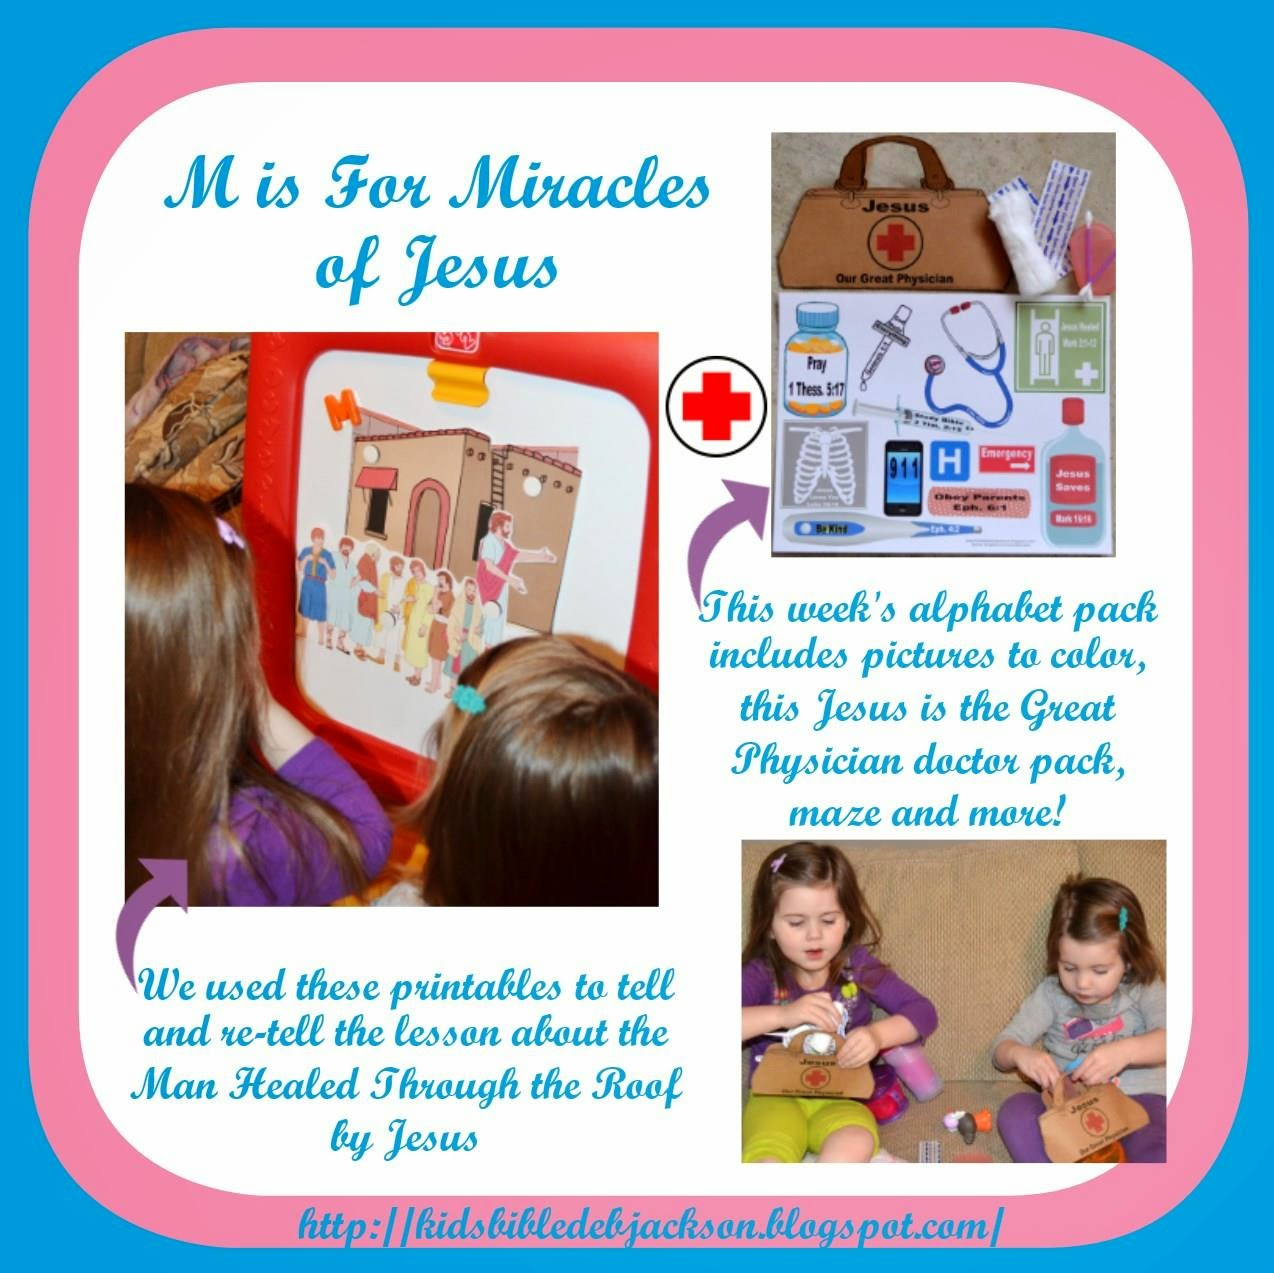 http://kidsbibledebjackson.blogspot.com/2014/04/preschool-alphabet-m-is-for-miracles.html